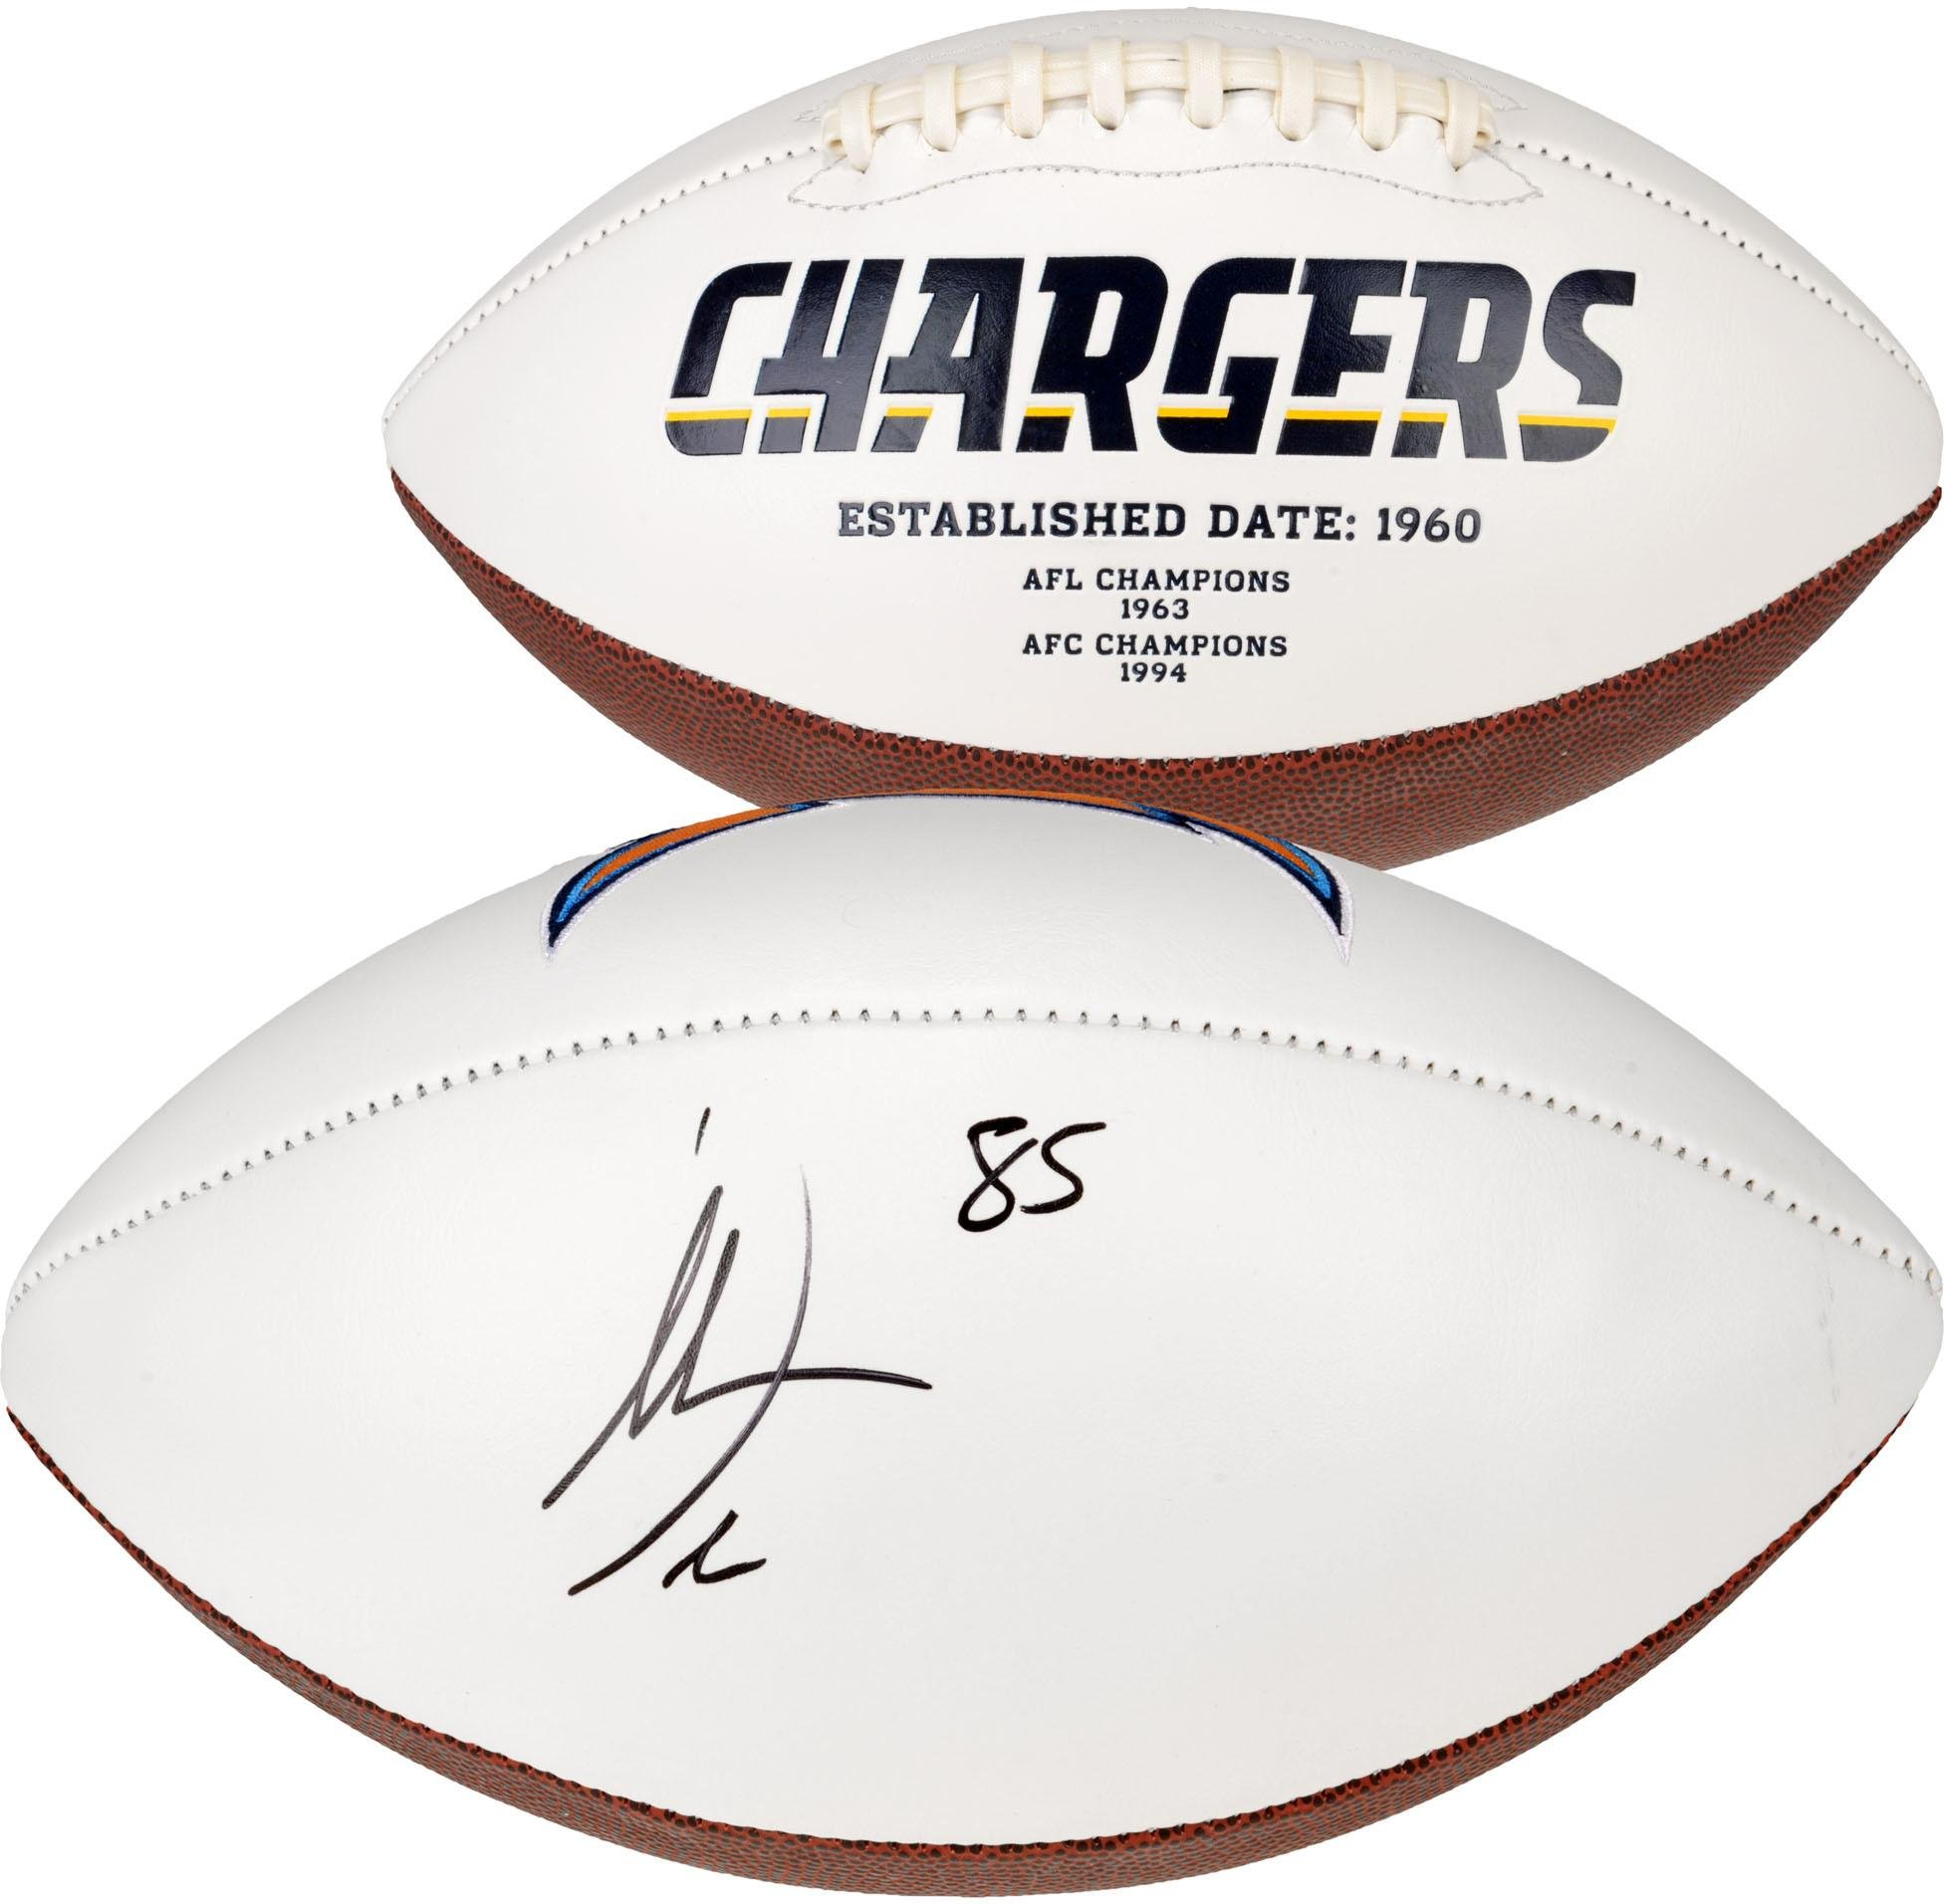 Antonio Gates San Diego Chargers Autographed White Panel Football Fanatics Authentic Certified Autographed Footballs